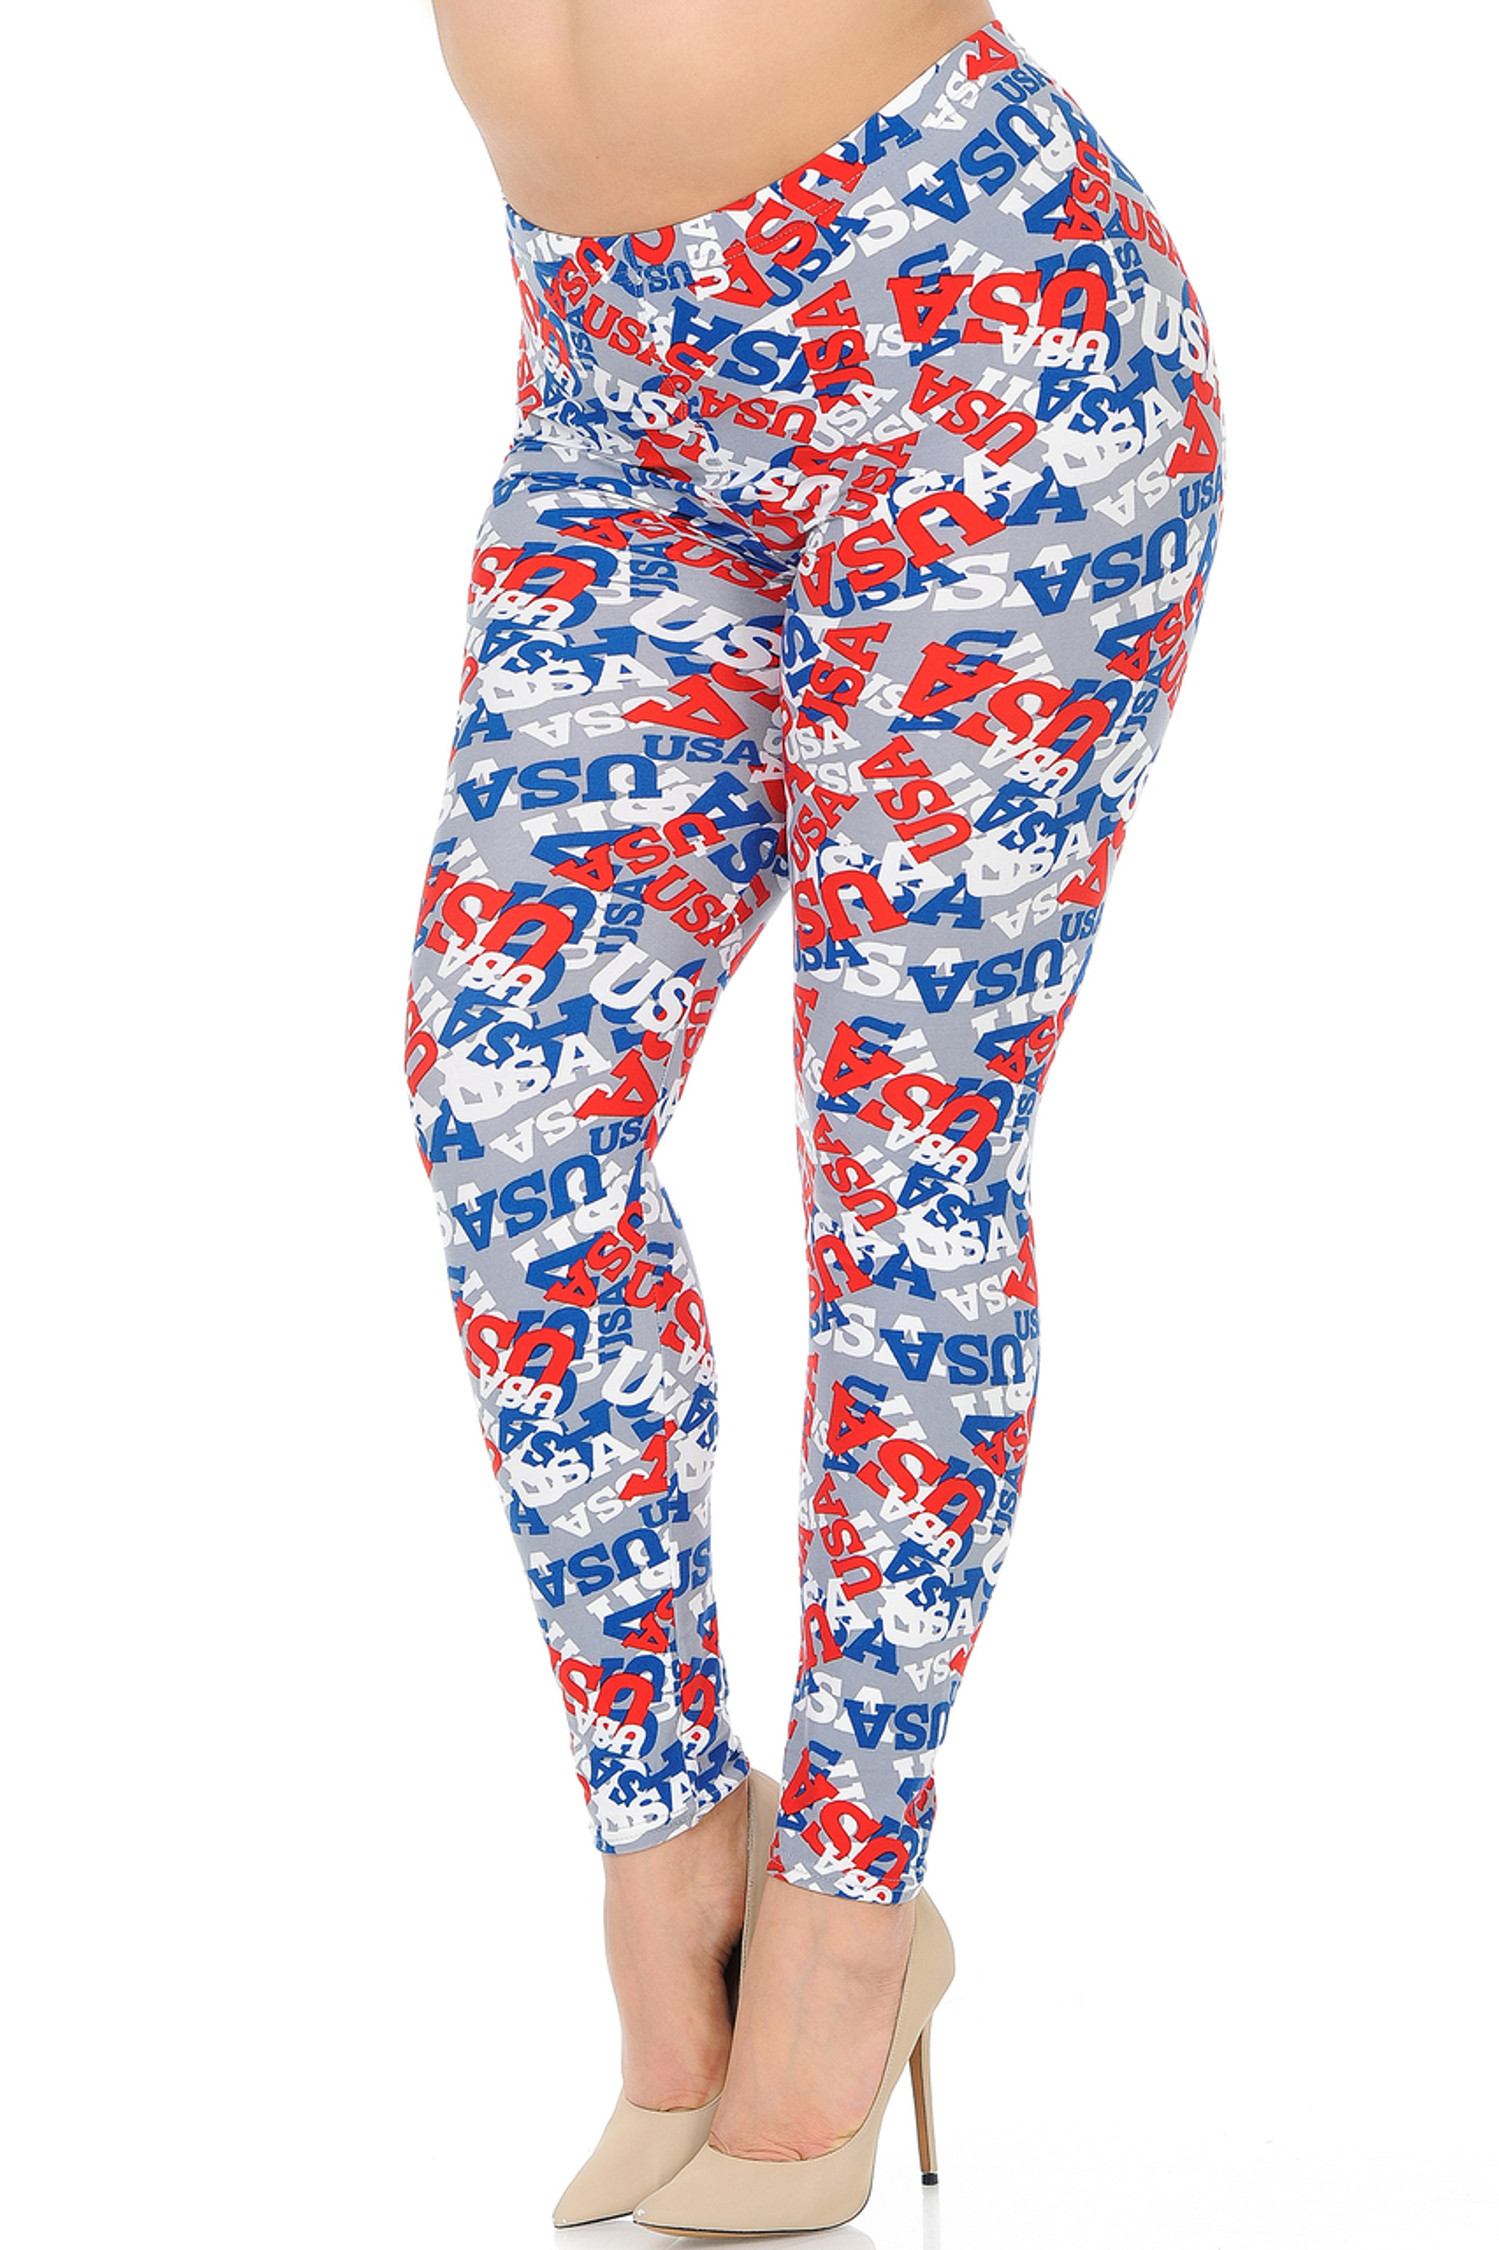 Buttery Soft All Over USA Plus Size Leggings